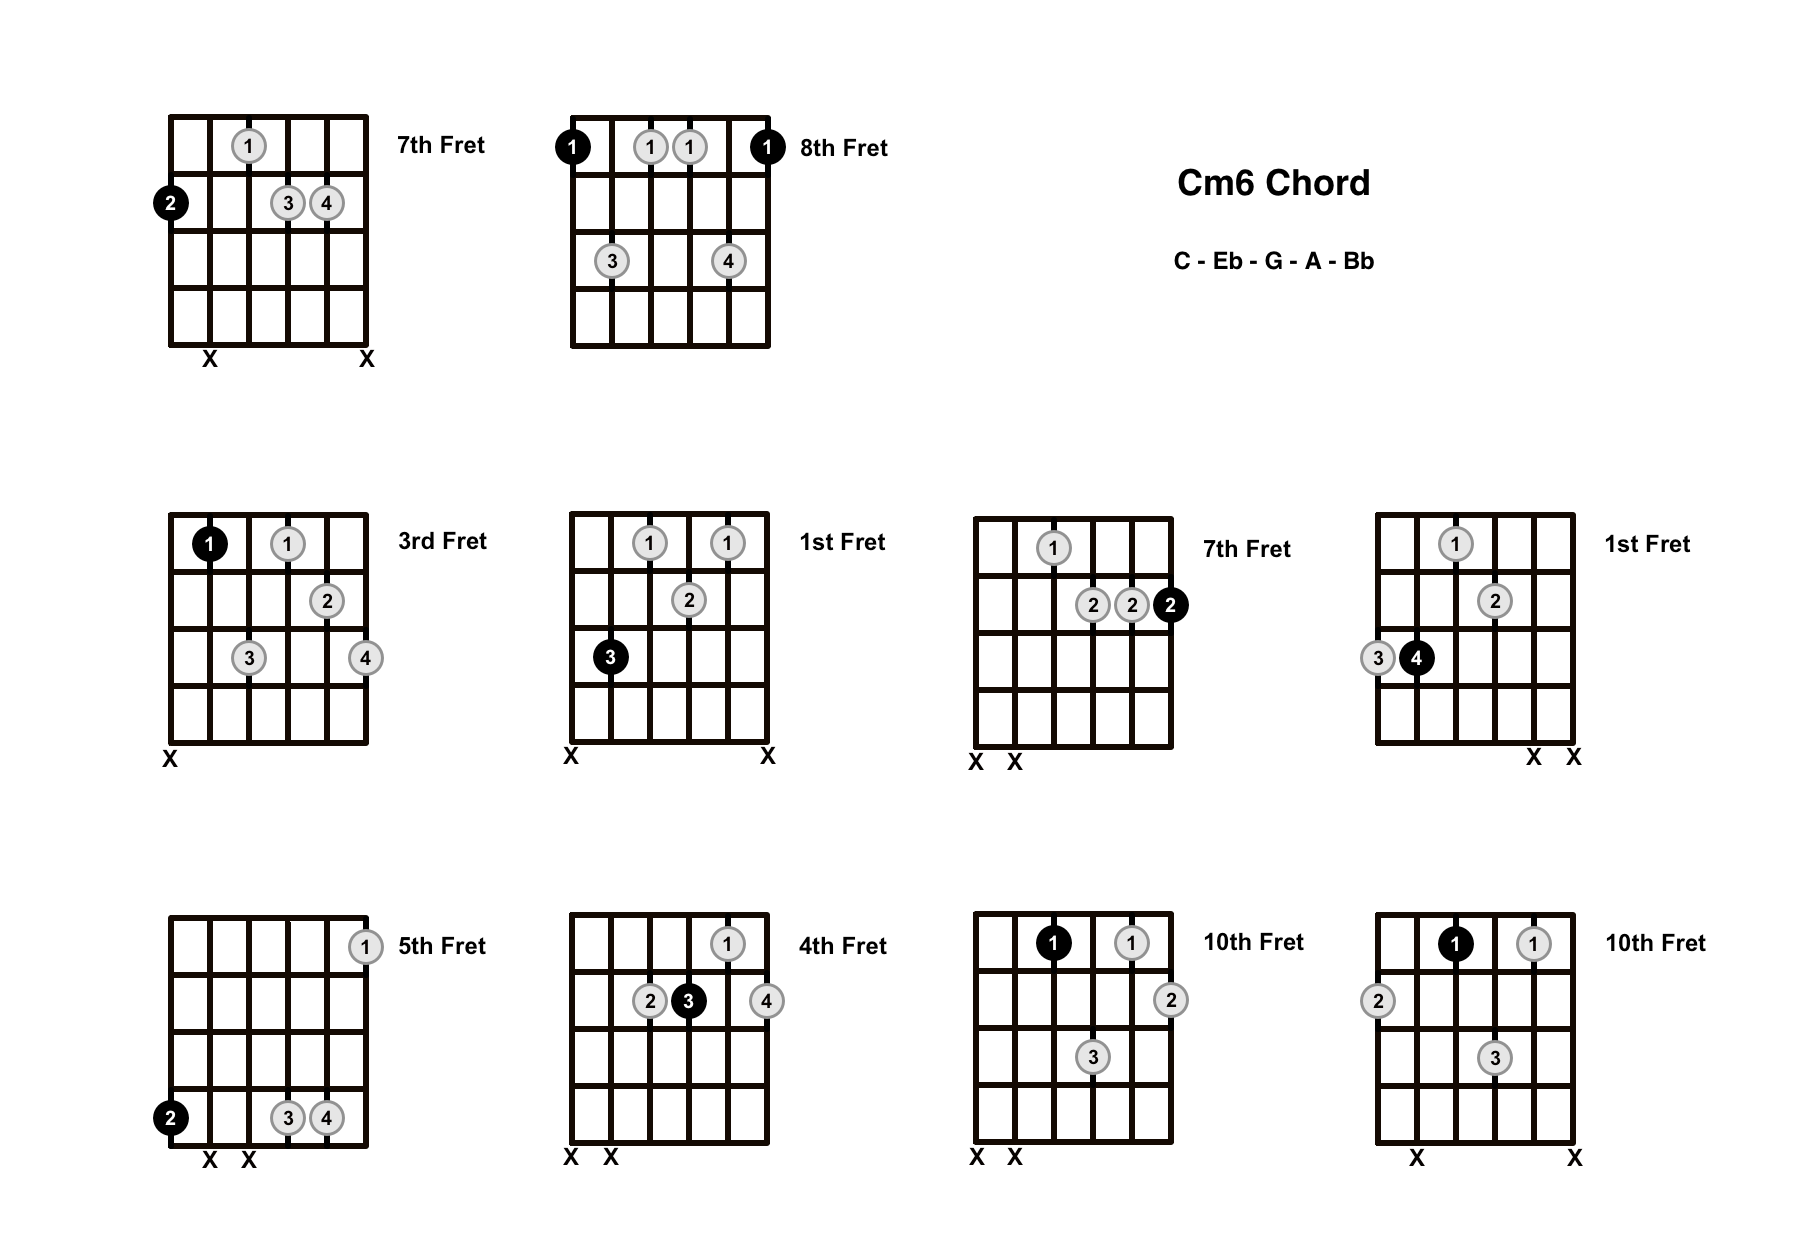 Cm6 Chord On The Guitar (C minor 6) – Diagrams, Finger Positions and Theory